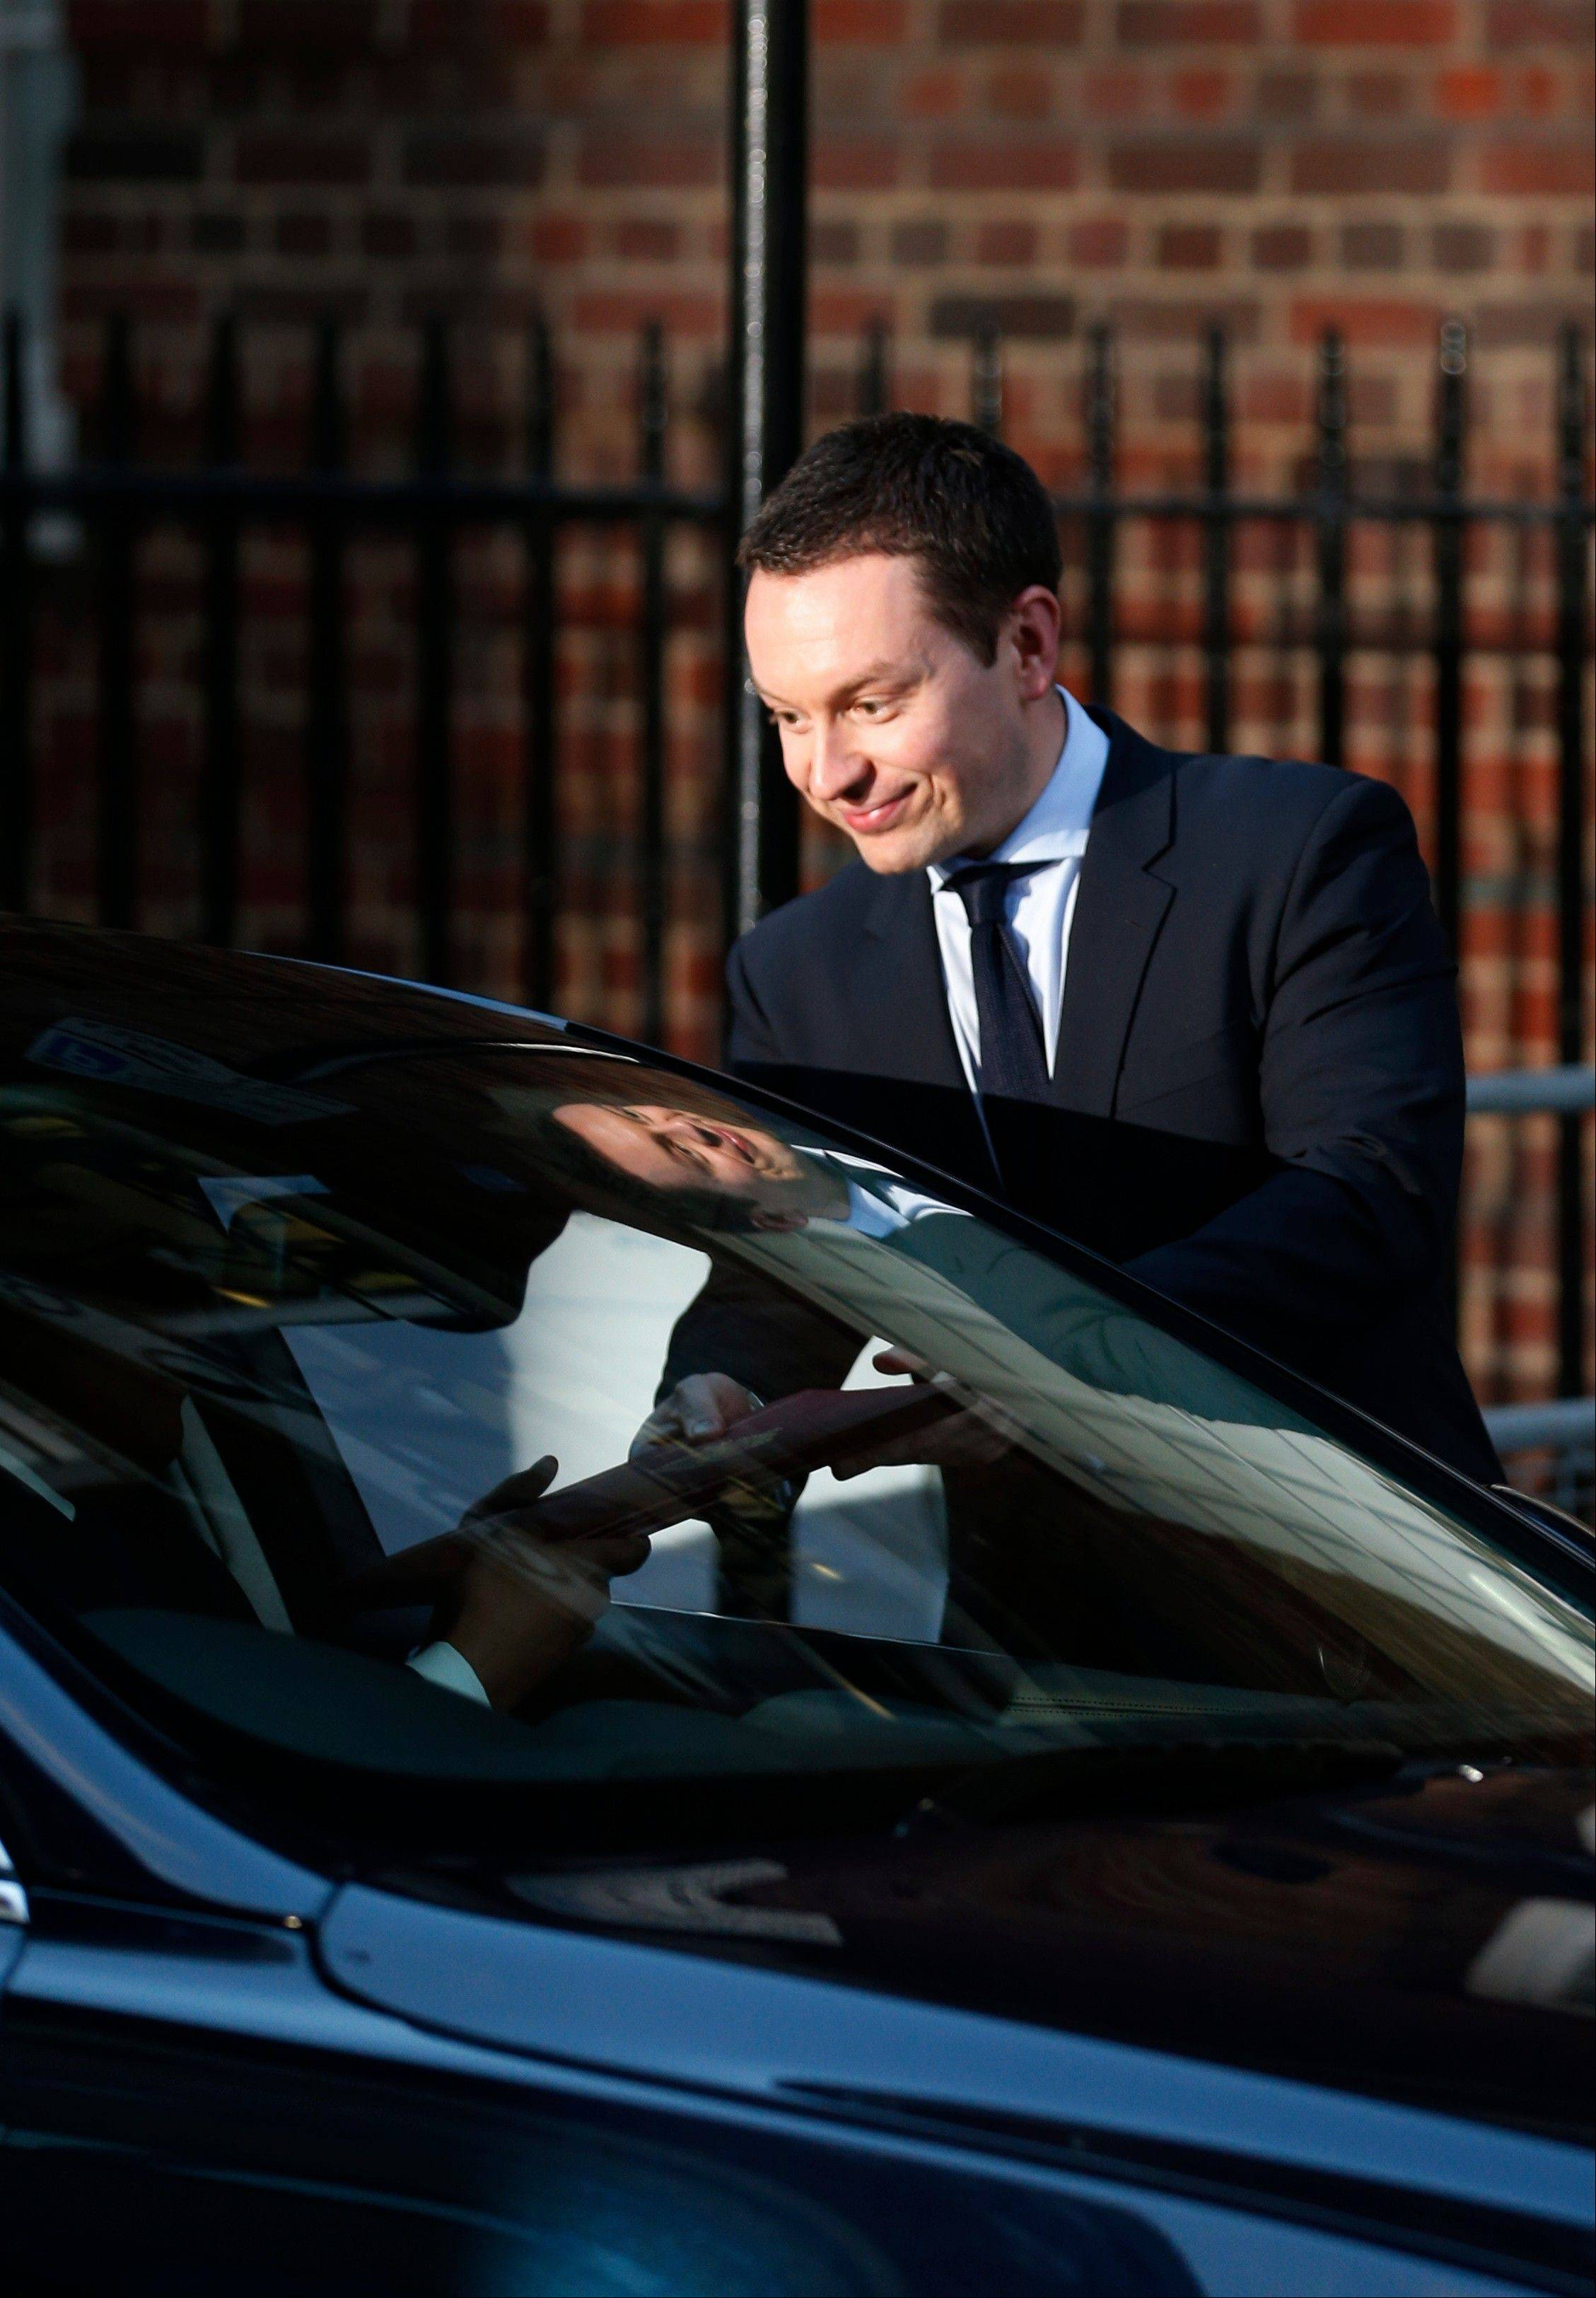 Ed Perkins, a Buckingham Palace official hands the birth announcement to colleague in a car to be driven to Buckingham Palace, outside St. Mary's Hospital exclusive Lindo Wing in London, Monday, July 22, 2013.